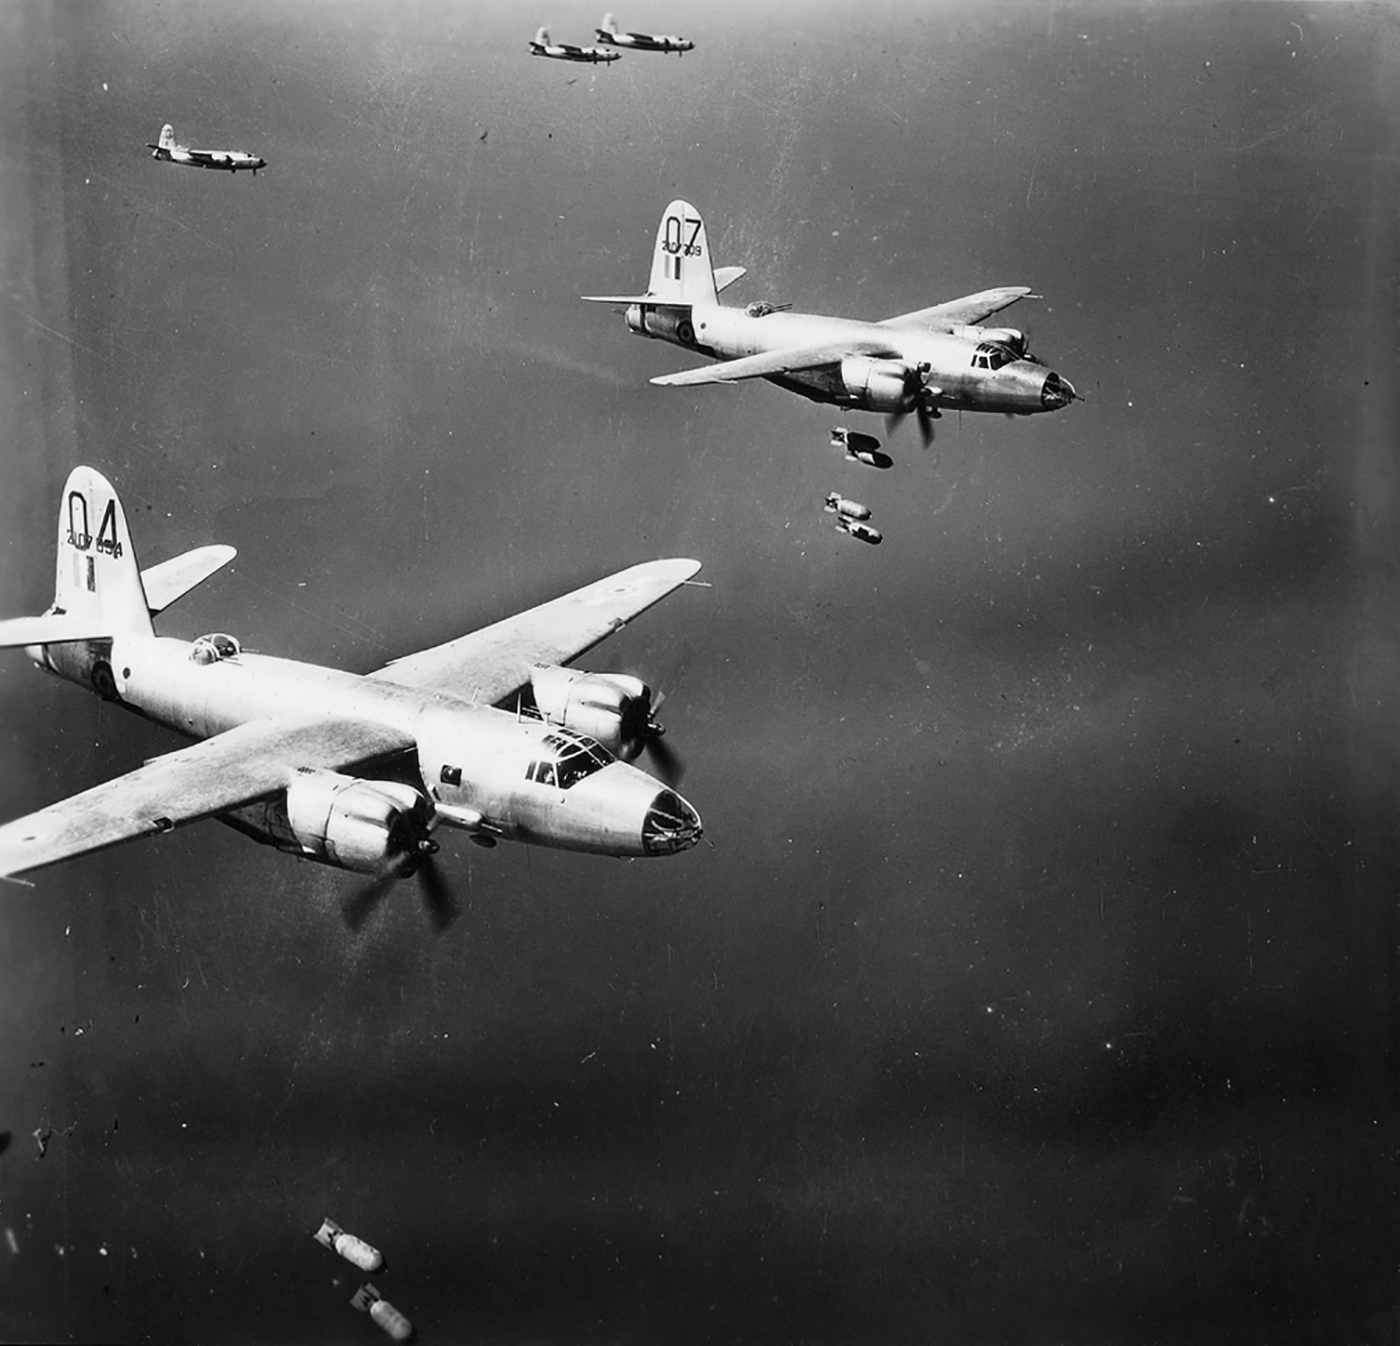 USAAF 42 107709 B 26C Marauder French Airforce 07 over the drop zone 01